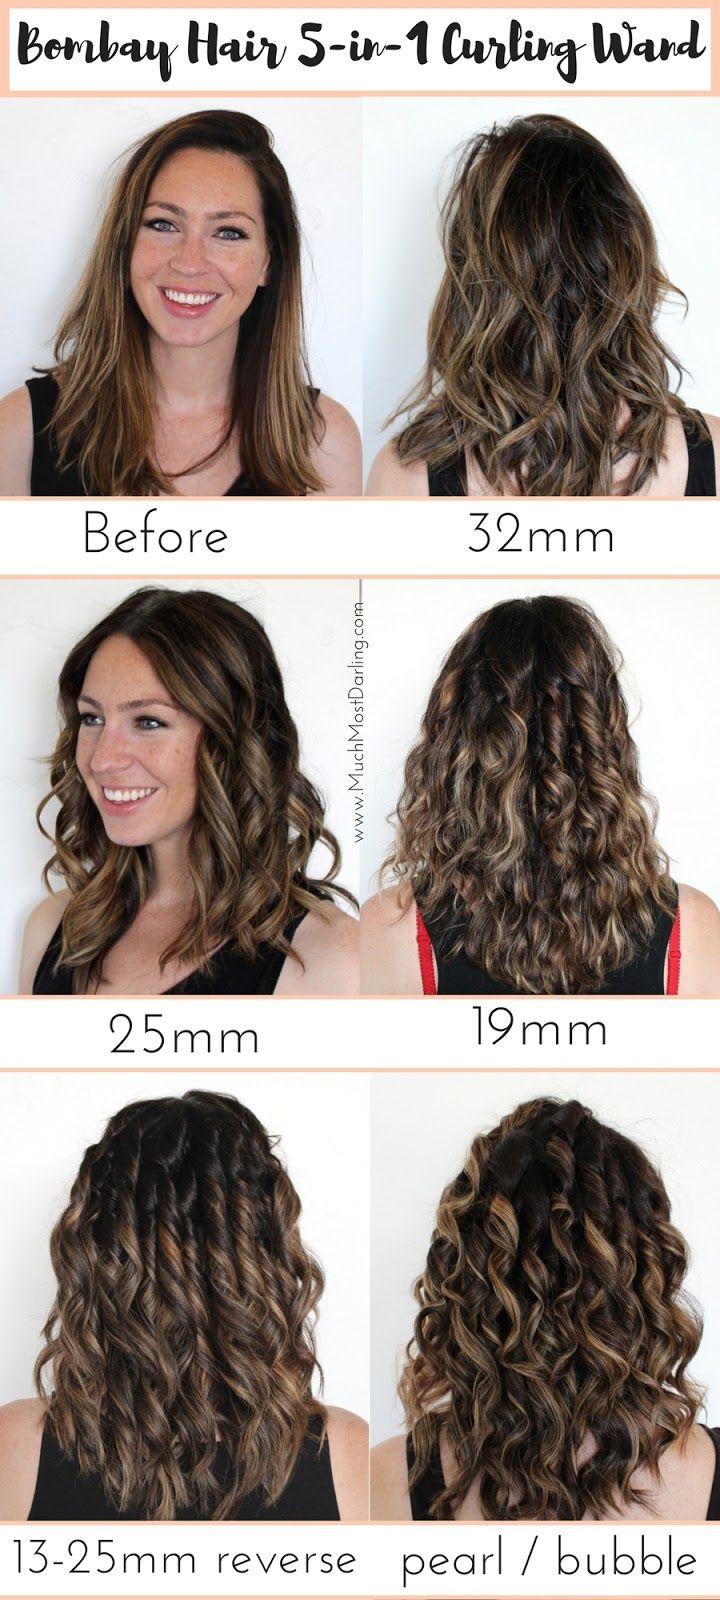 "This quick infographic and tutorial will give you a visual difference between the 5 wands included in the Bombay Hair 5-in-1 Curling Wand: the 32mm vs 25mm vs 13-25mm (reverse) vs 19mm vs Pearl / Bubble wand.  Each of the five interchangeable barrels are tourmaline infused with ceramic and emit infrared negative ions, which means frizz free curls and styles. Use code ""SHYNNZ"" to save 50% off all hair tools from Bombay!"